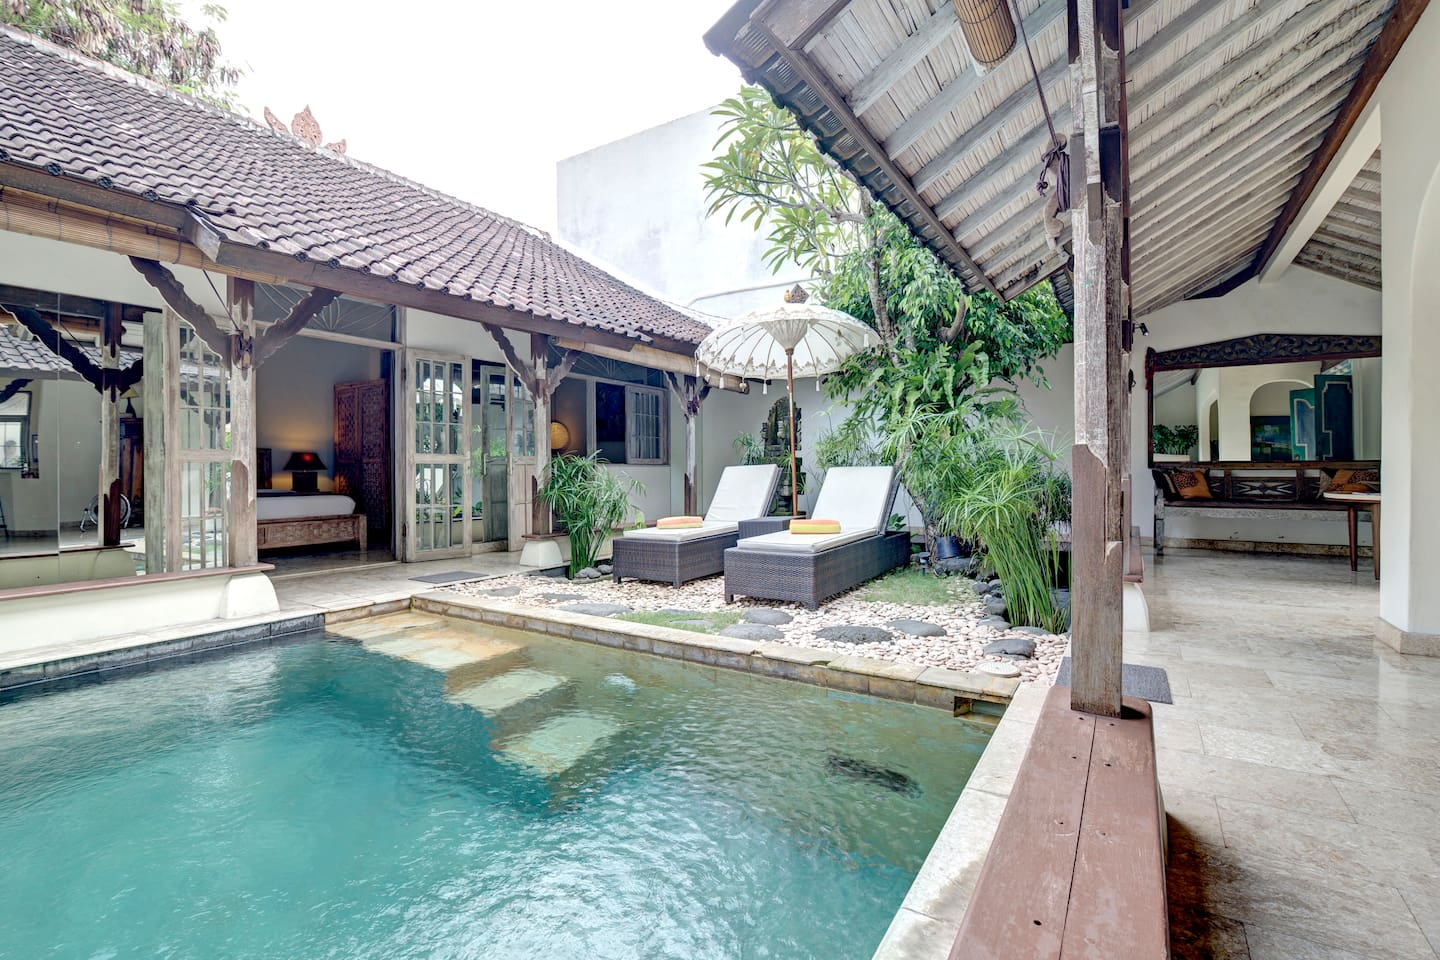 Atrium Style House  built around the pool